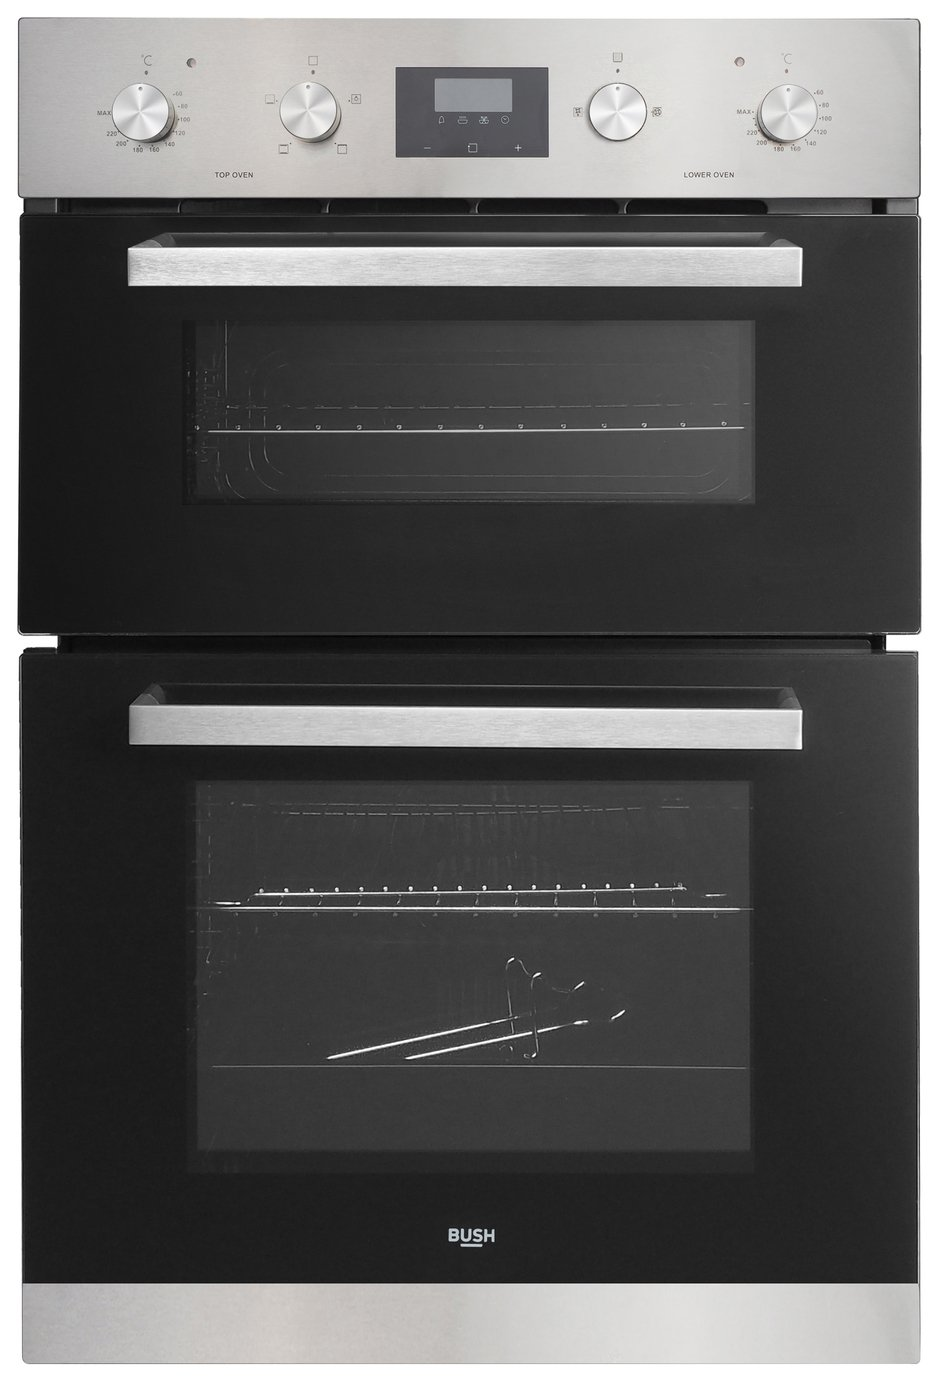 Bush AWBSDFO Built In Double Electric Oven - Stainless Steel